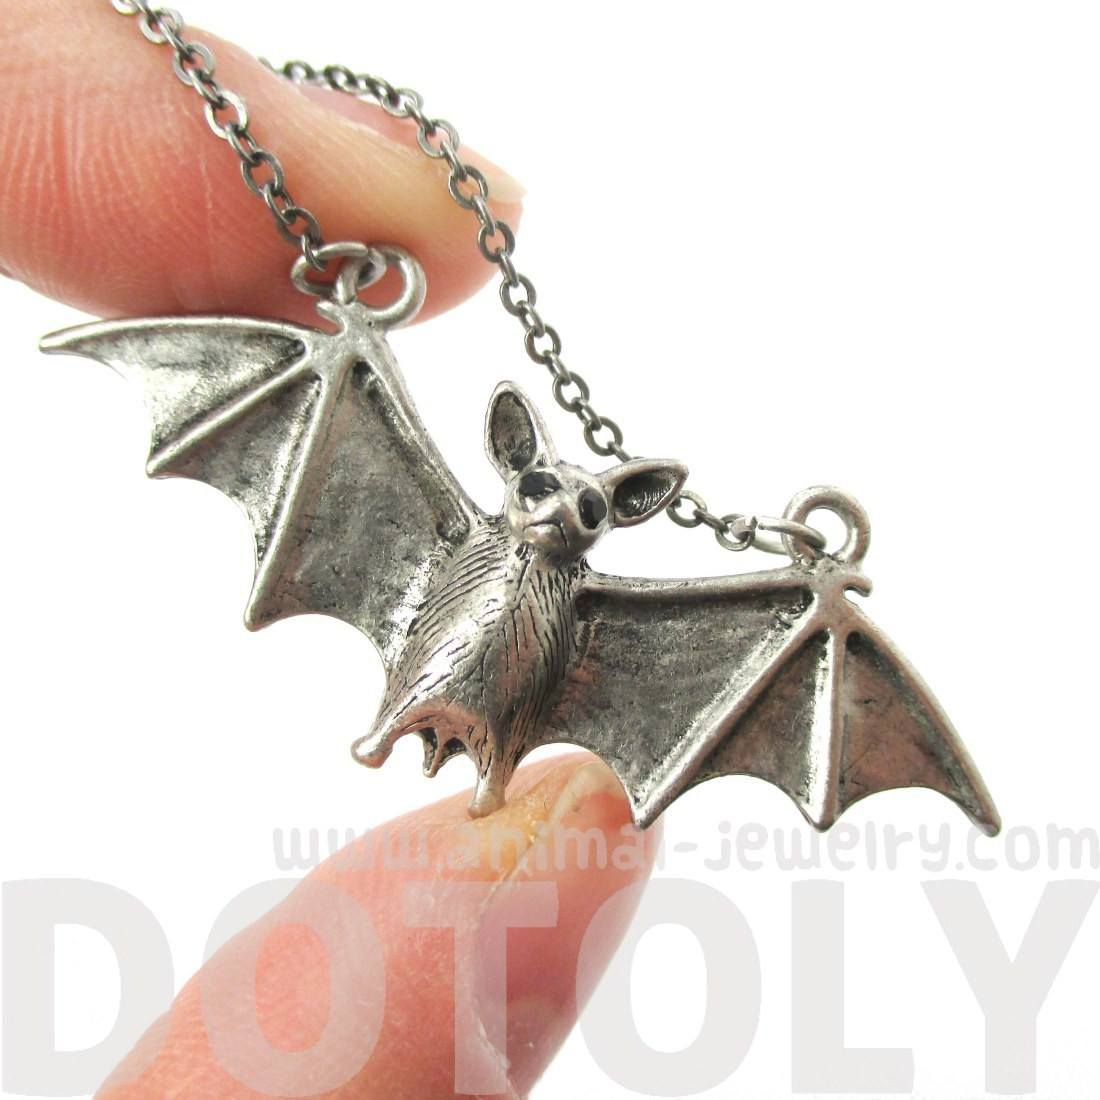 Adorable Bat Shaped Animal Pendant Necklace in Silver | Animal Jewelry